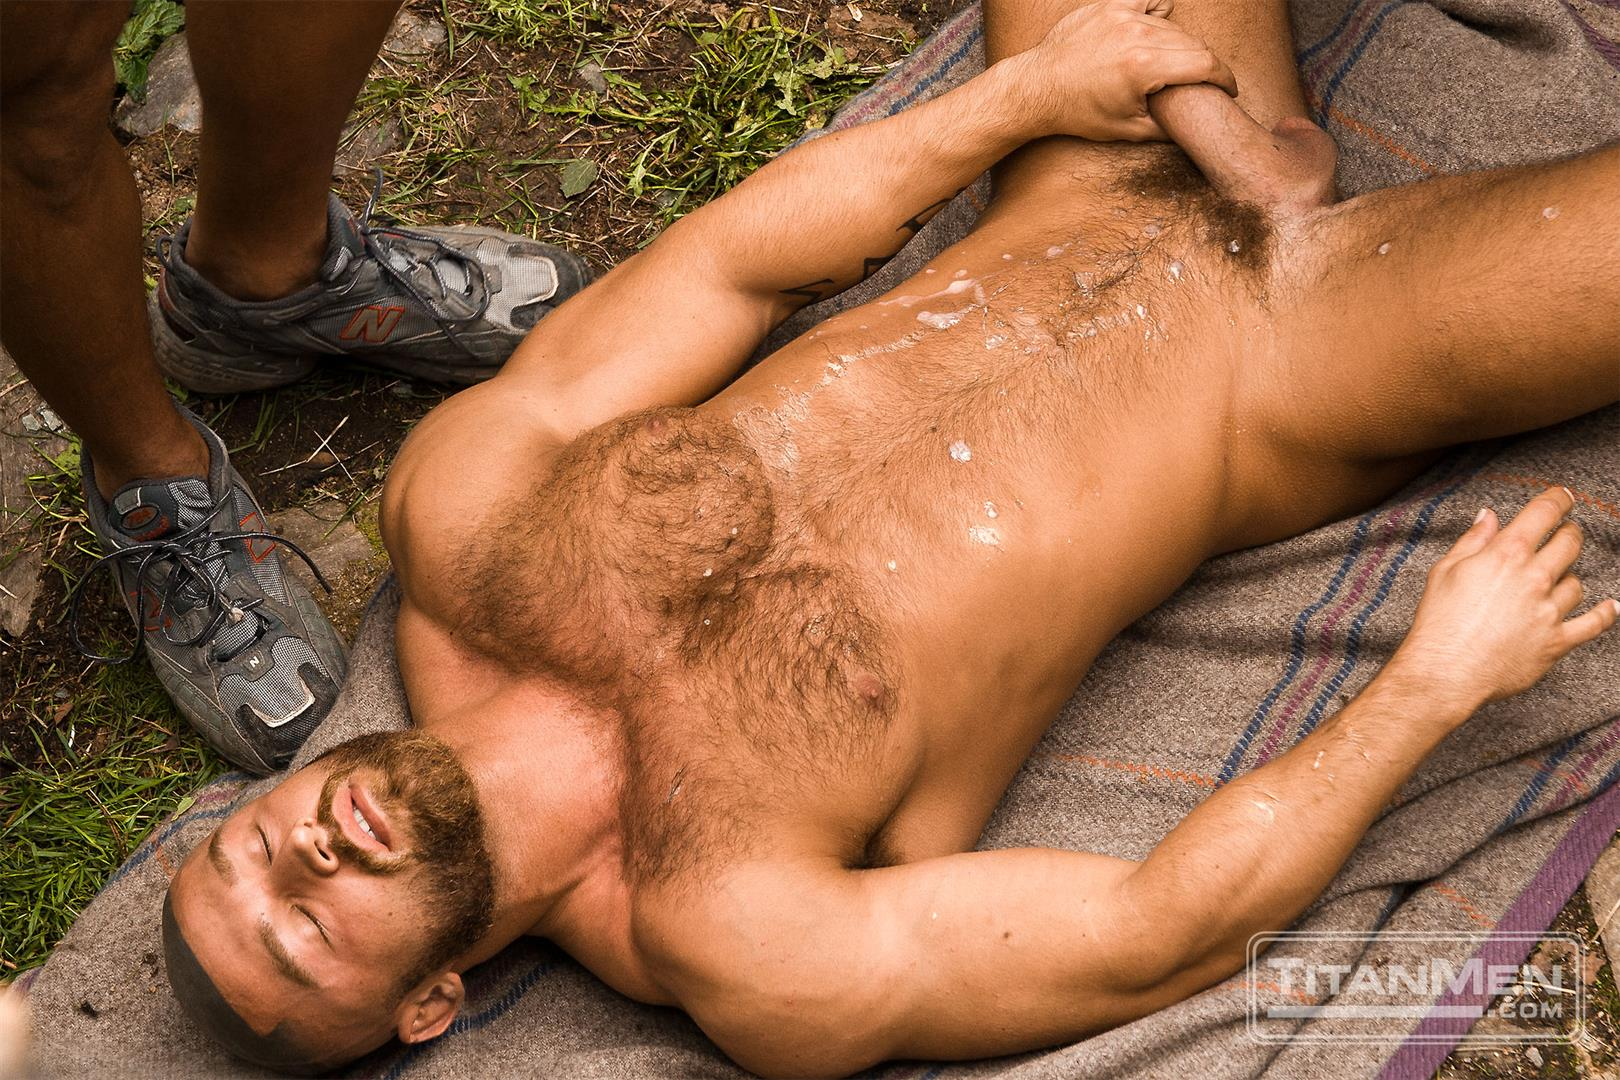 TitanMen Cum Shots from Hairy Muscle Hunks Amateur Gay Porn 6